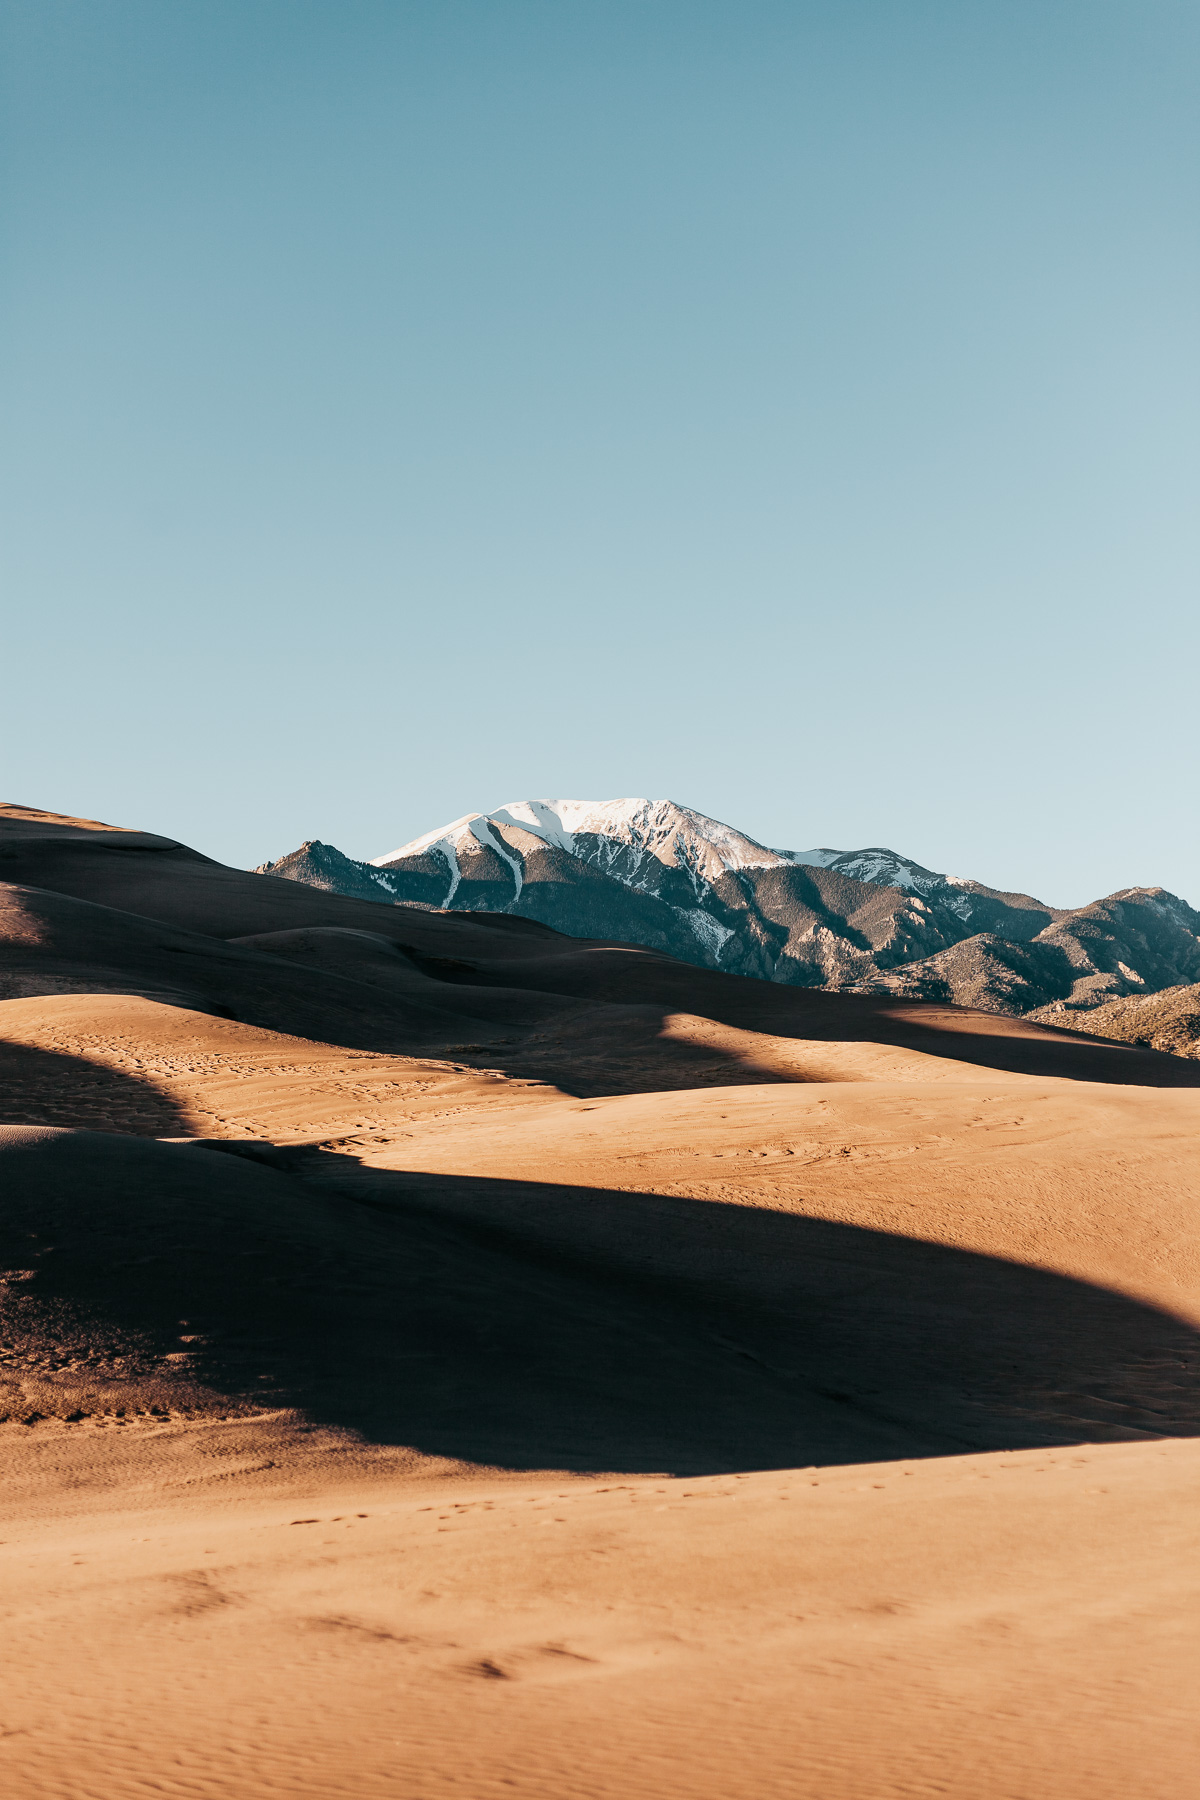 10 Day Road Trip Through Colorado | Great Sand Dunes National Park